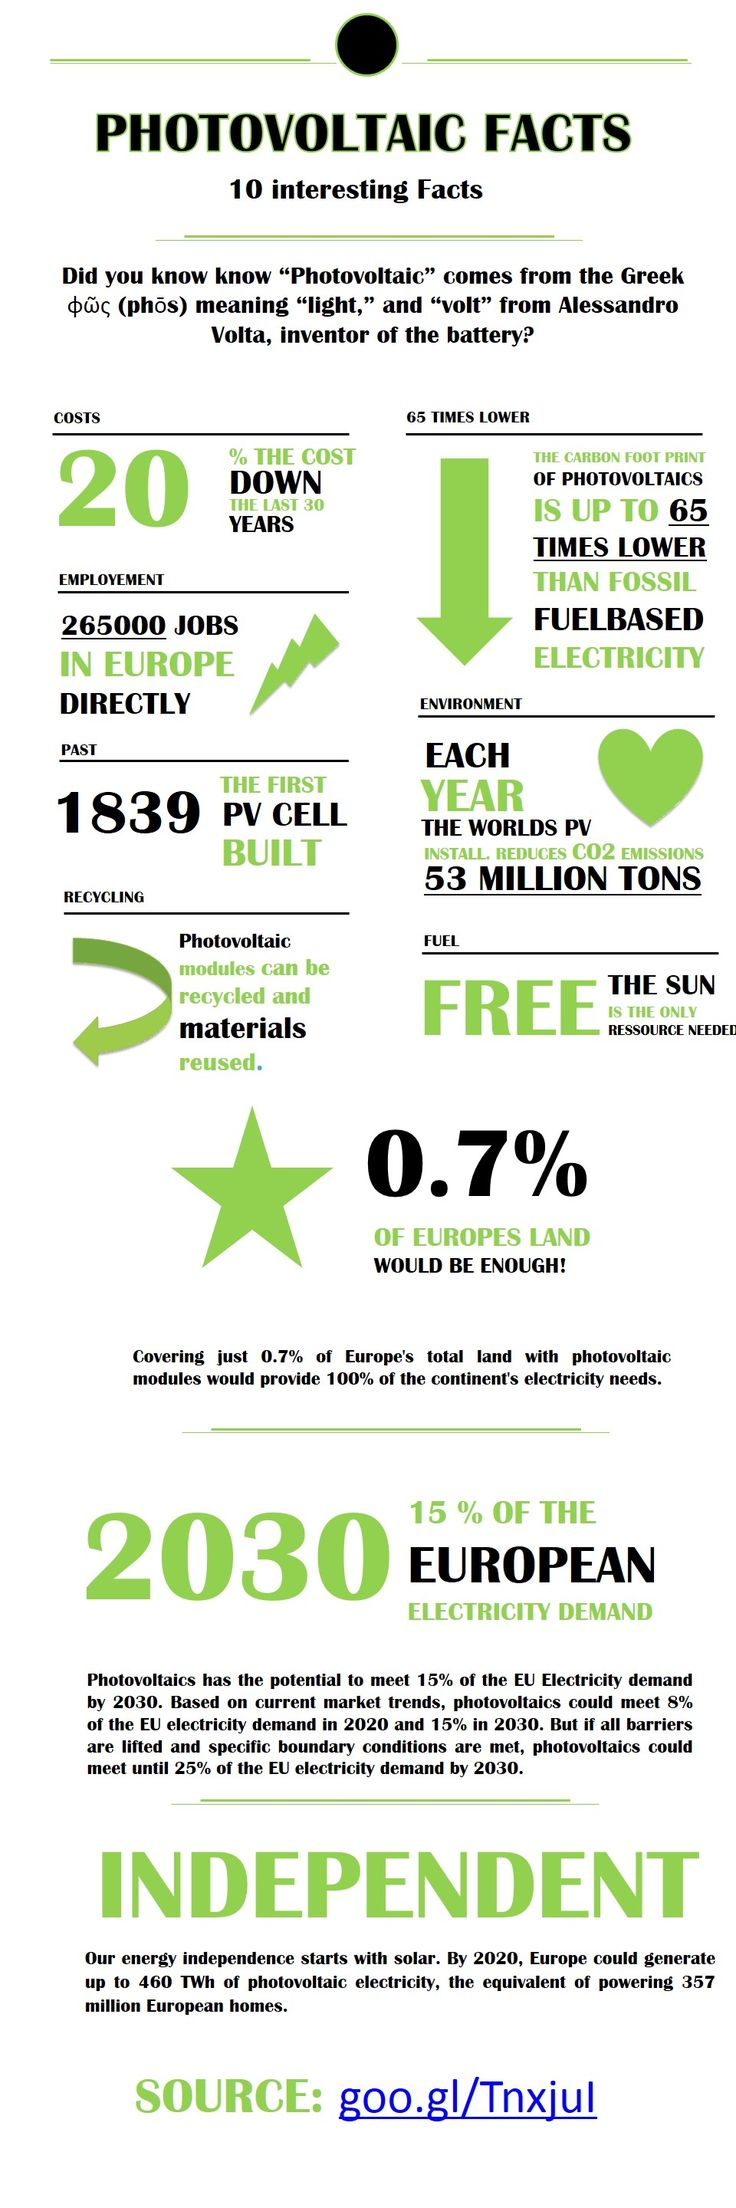 10 interesting photovoltaic facts